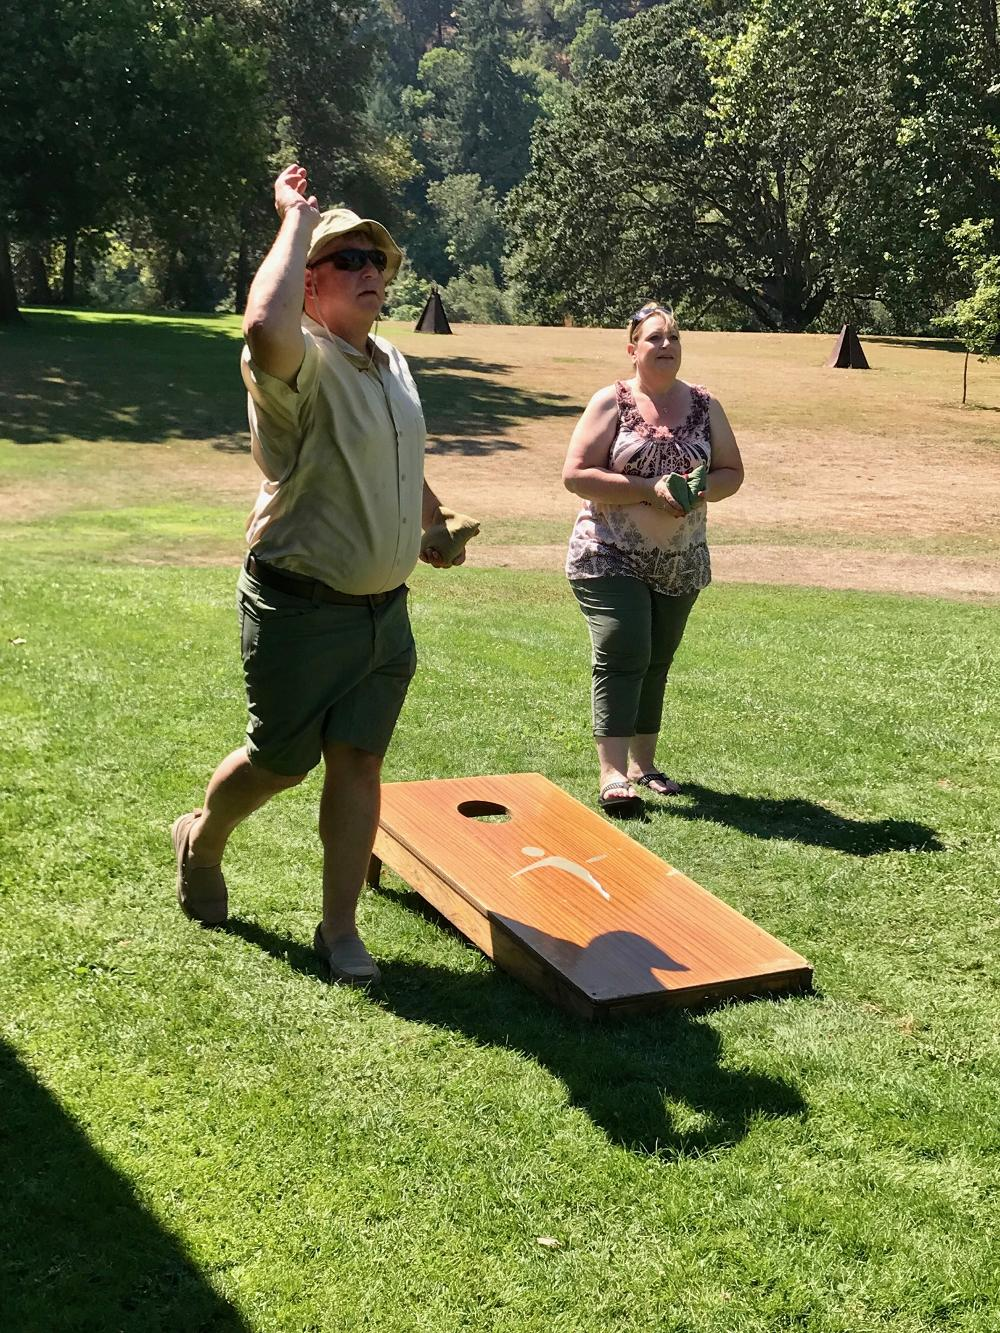 perfect cornhole form